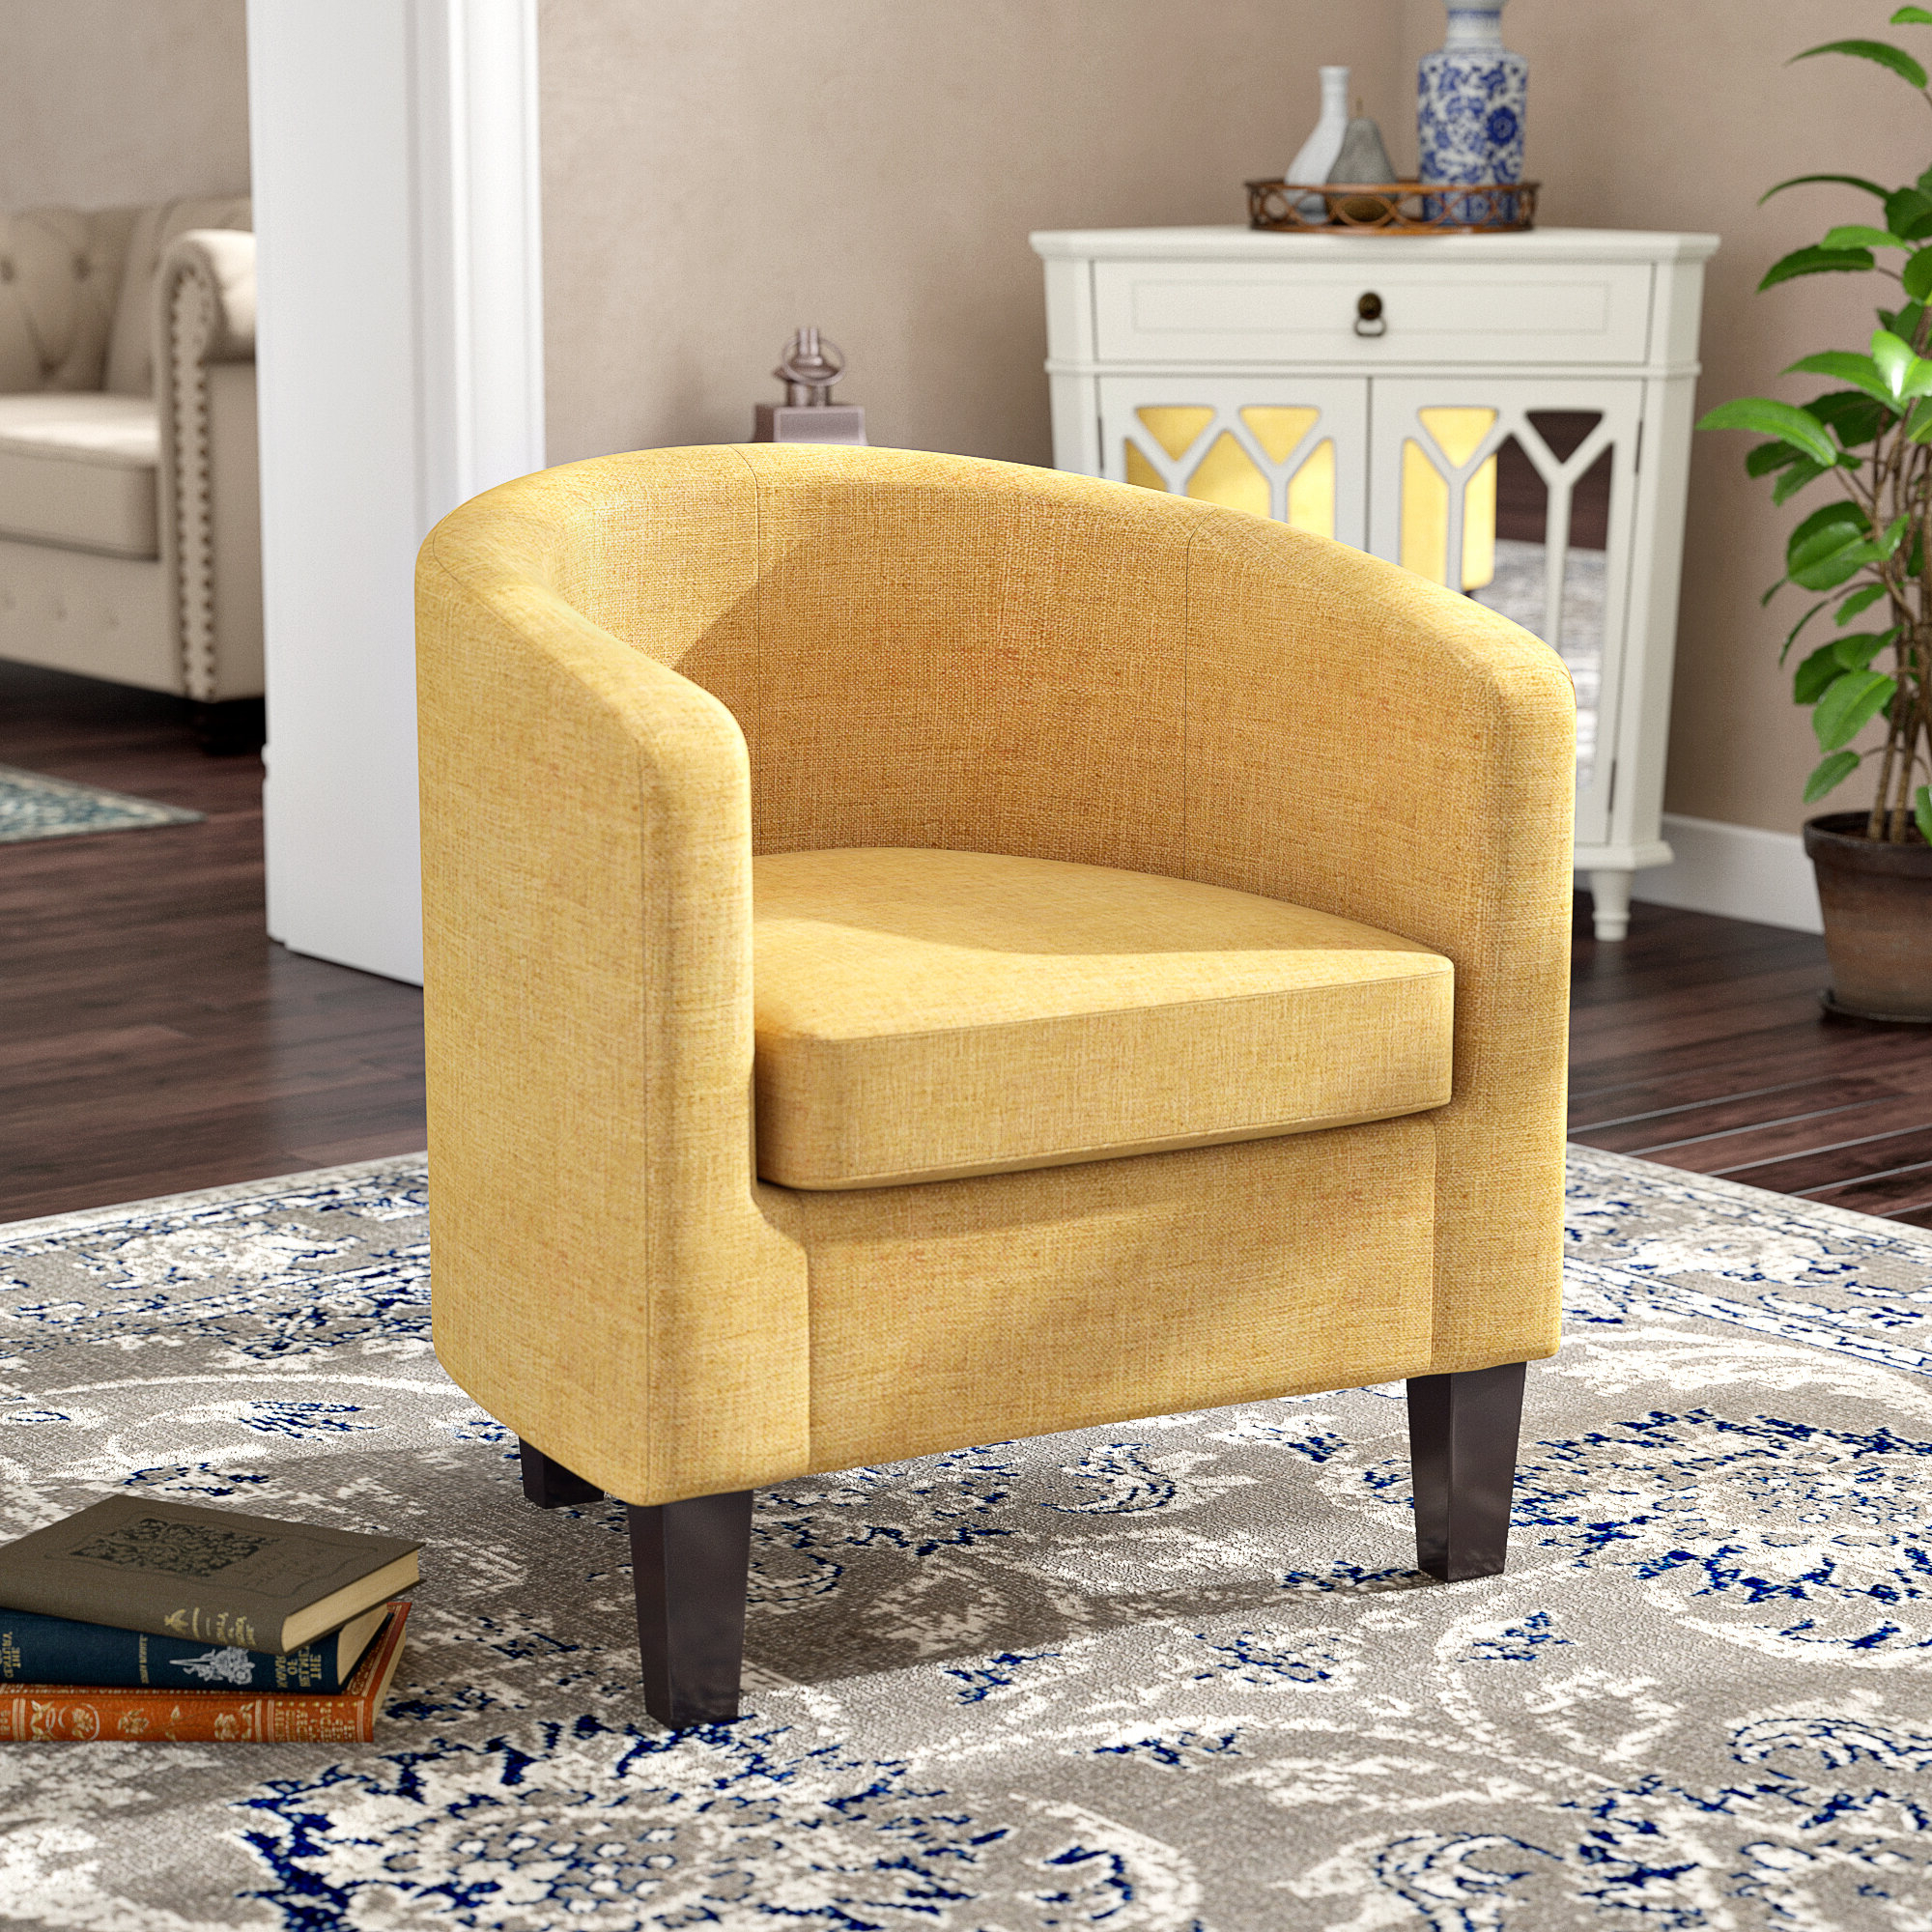 Adelia Barrel Chair With Most Up To Date Filton Barrel Chairs (View 3 of 20)